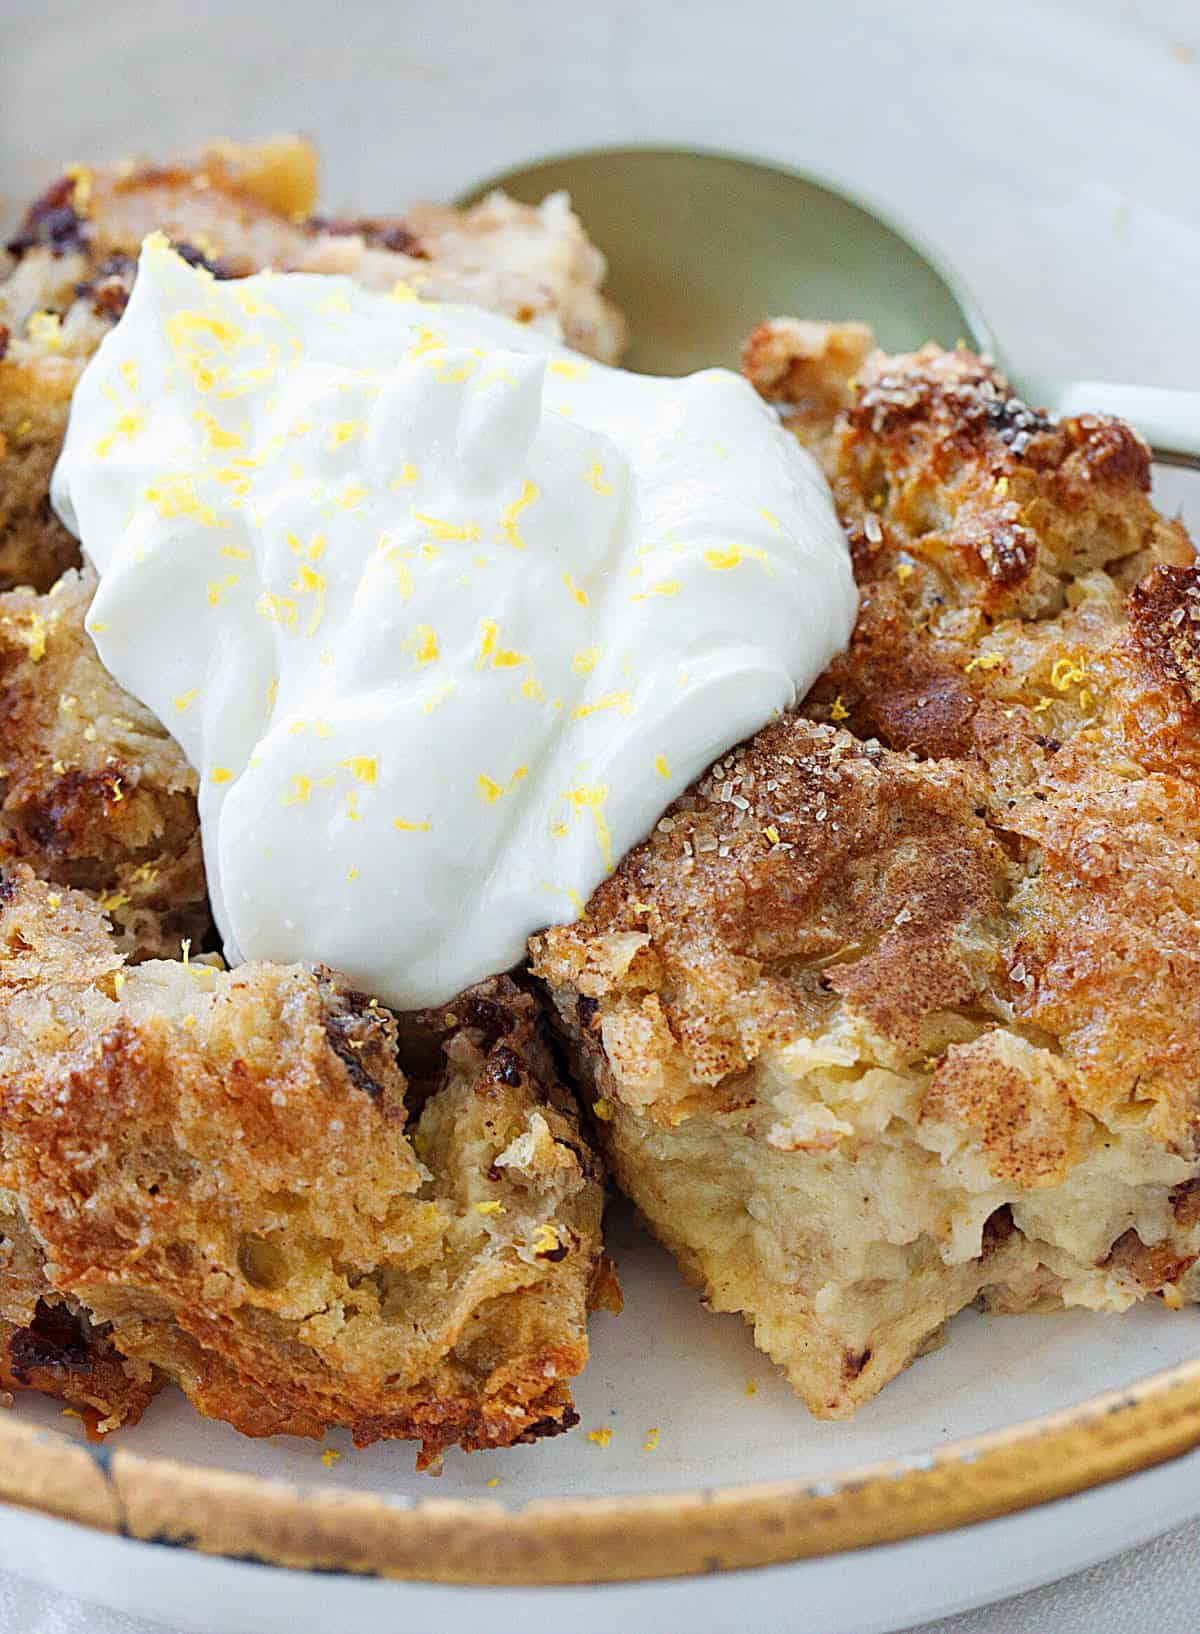 Close up of panettone bread pudding topped with cream on gold rimmed bowl